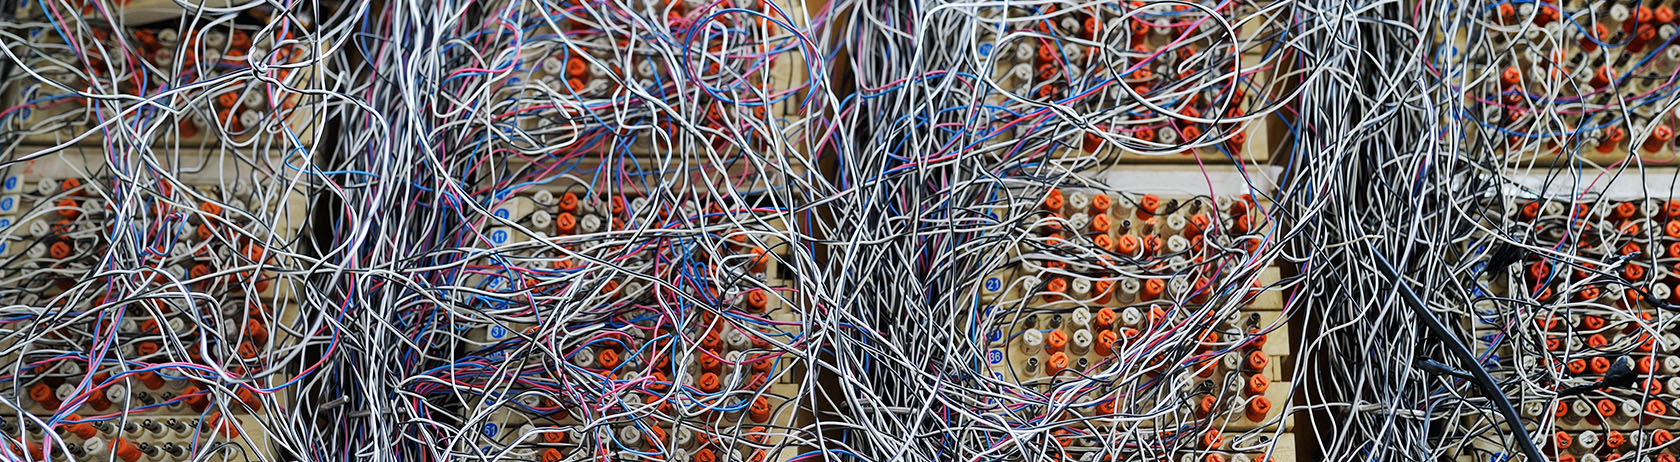 Terrific Cable Management Is Essential To Avoid Air Damming Knowledge Wiring 101 Mecadwellnesstrialsorg